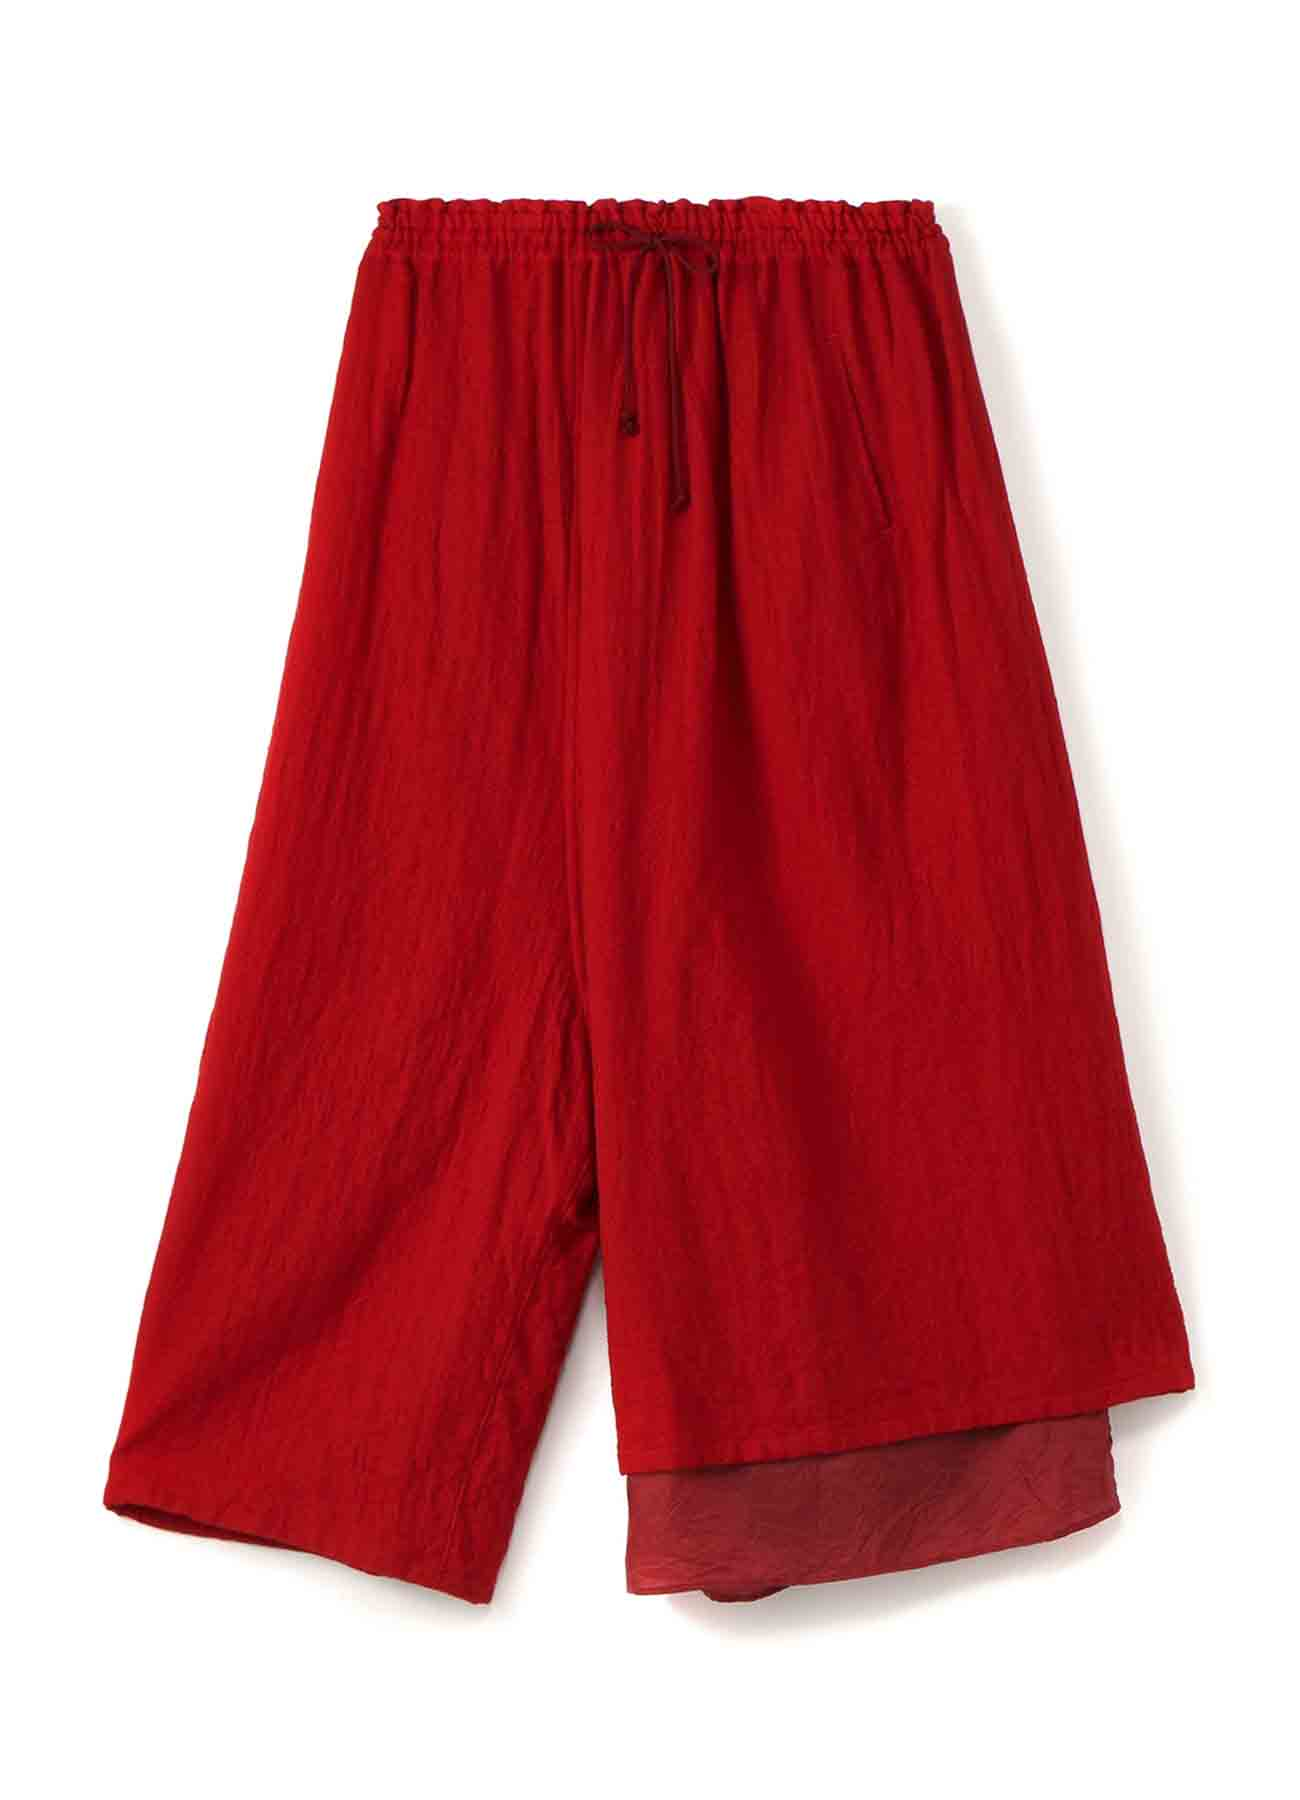 WOOL ROUGH TWILL GARMENT MILLING LEFT LAYERED STRING PANTS